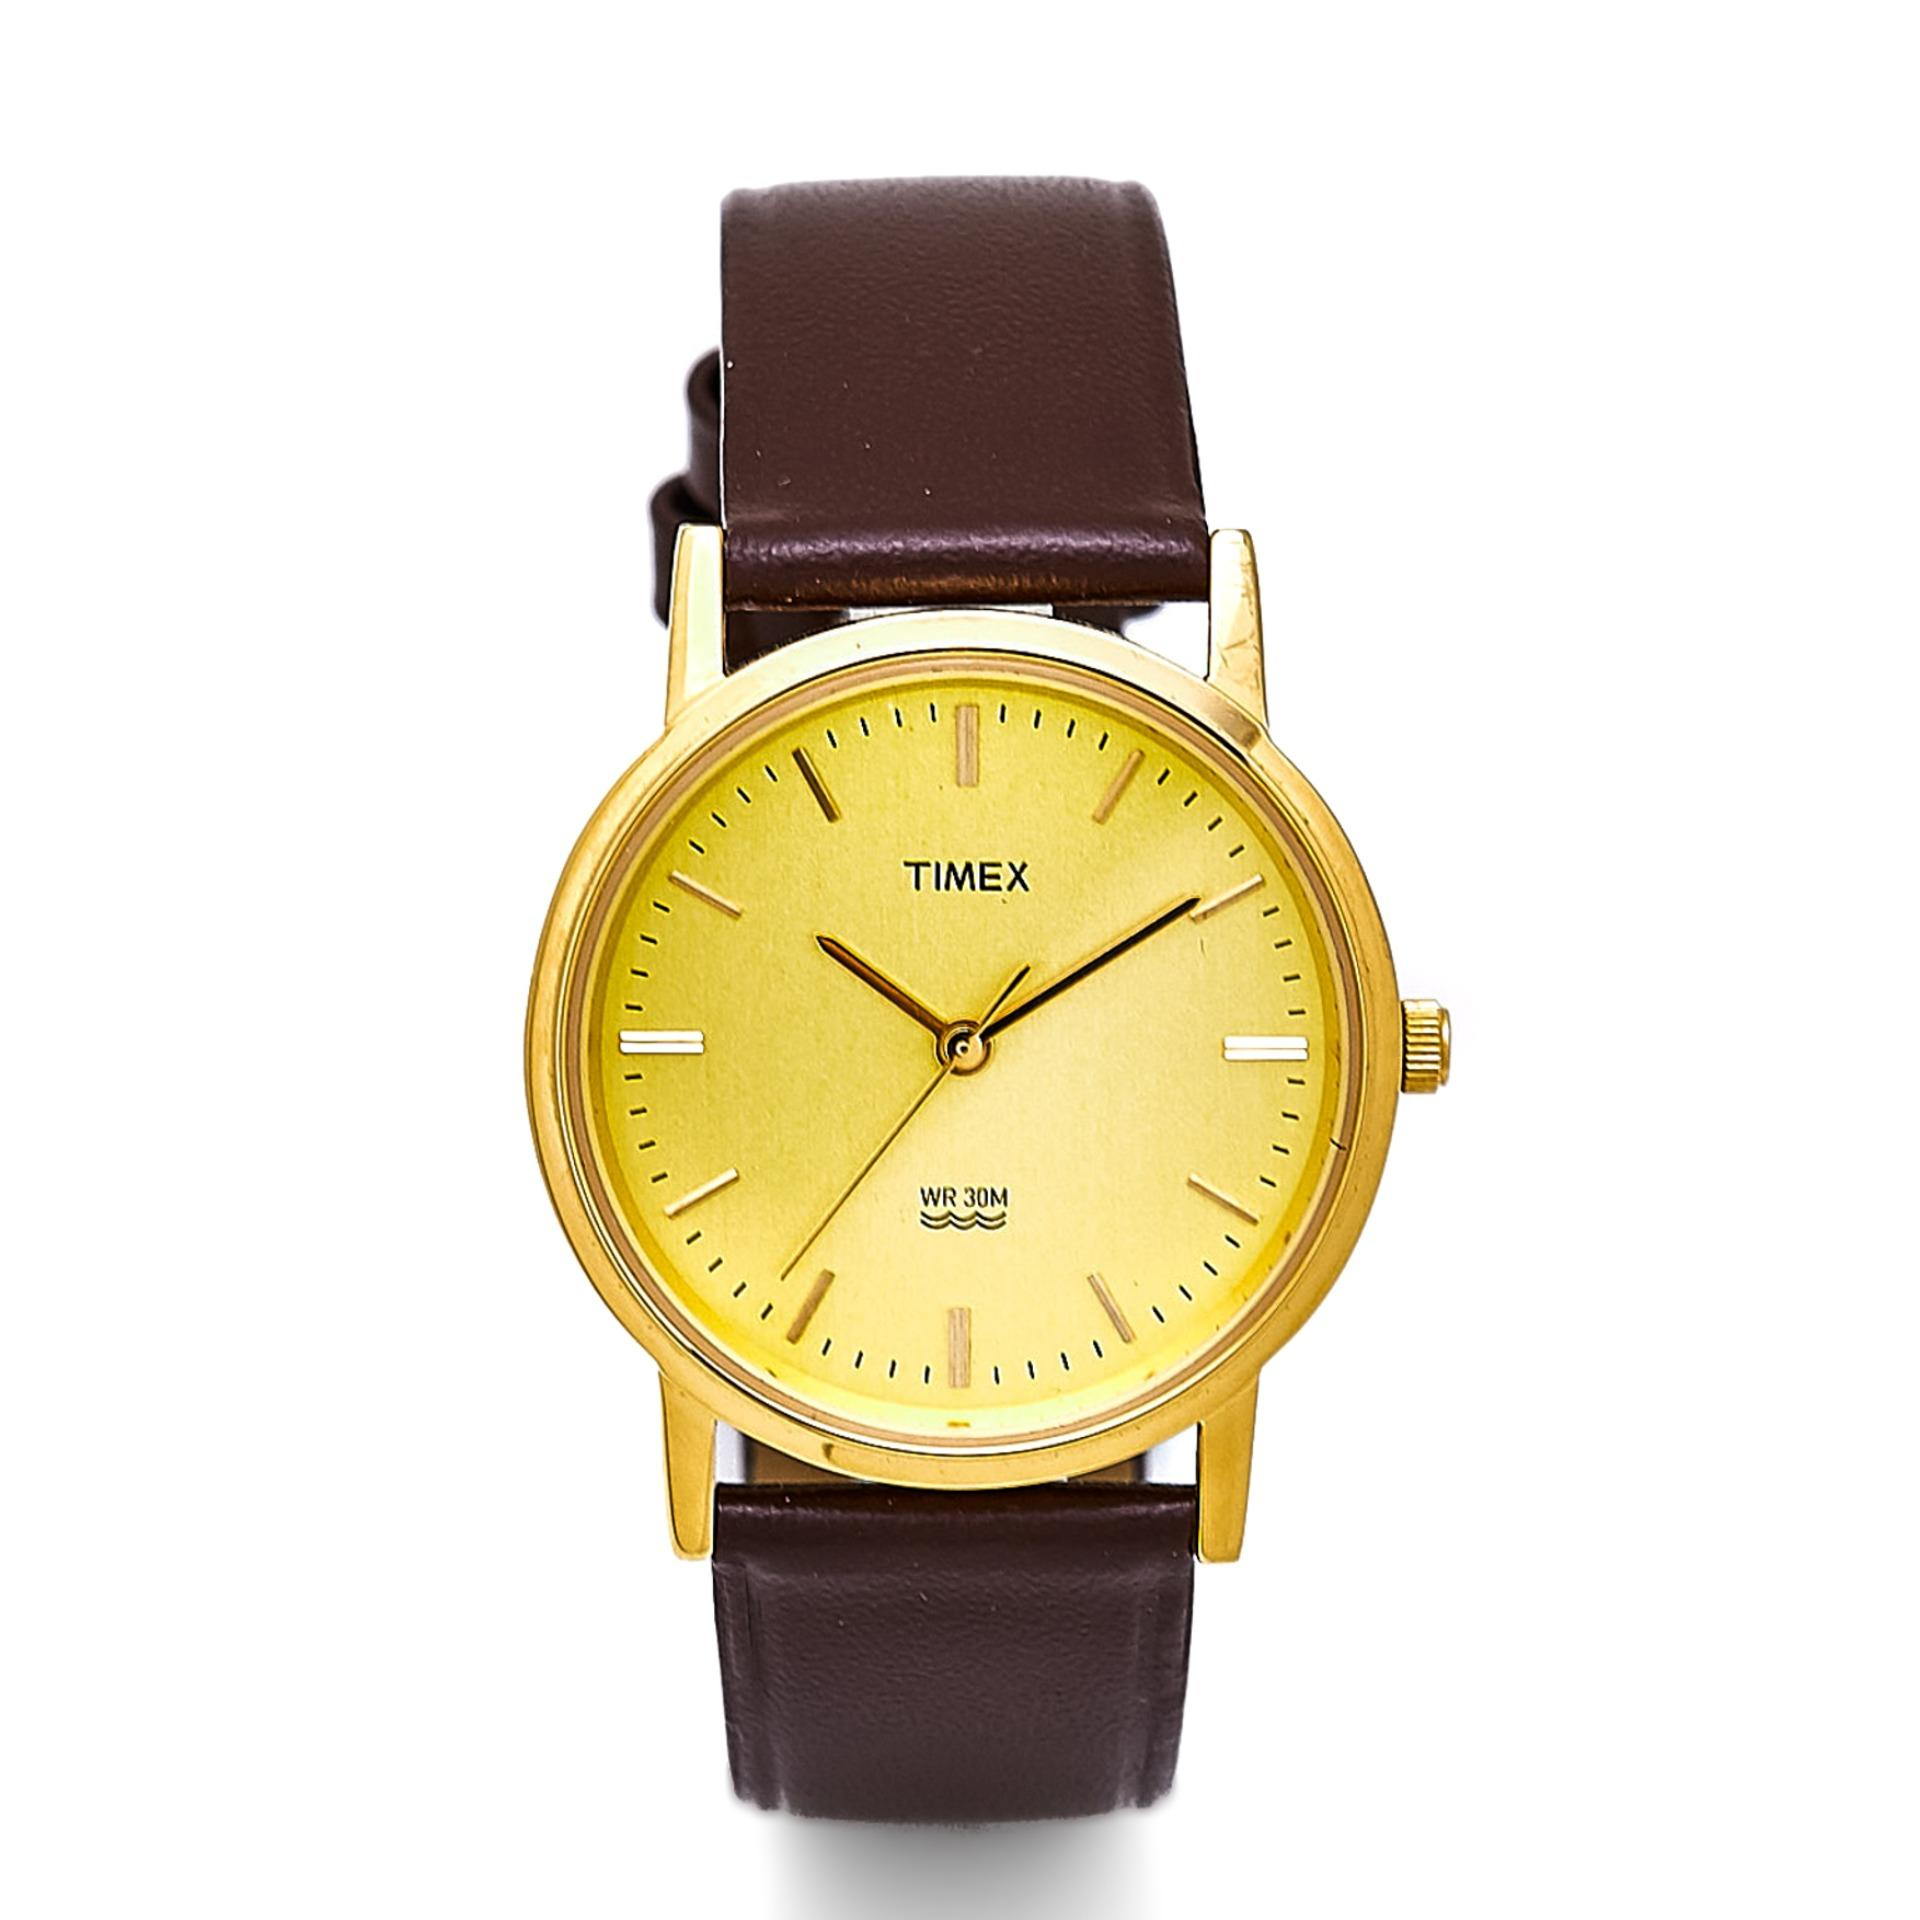 64887329d Timex Philippines - Timex Watches for sale - prices & reviews | Lazada